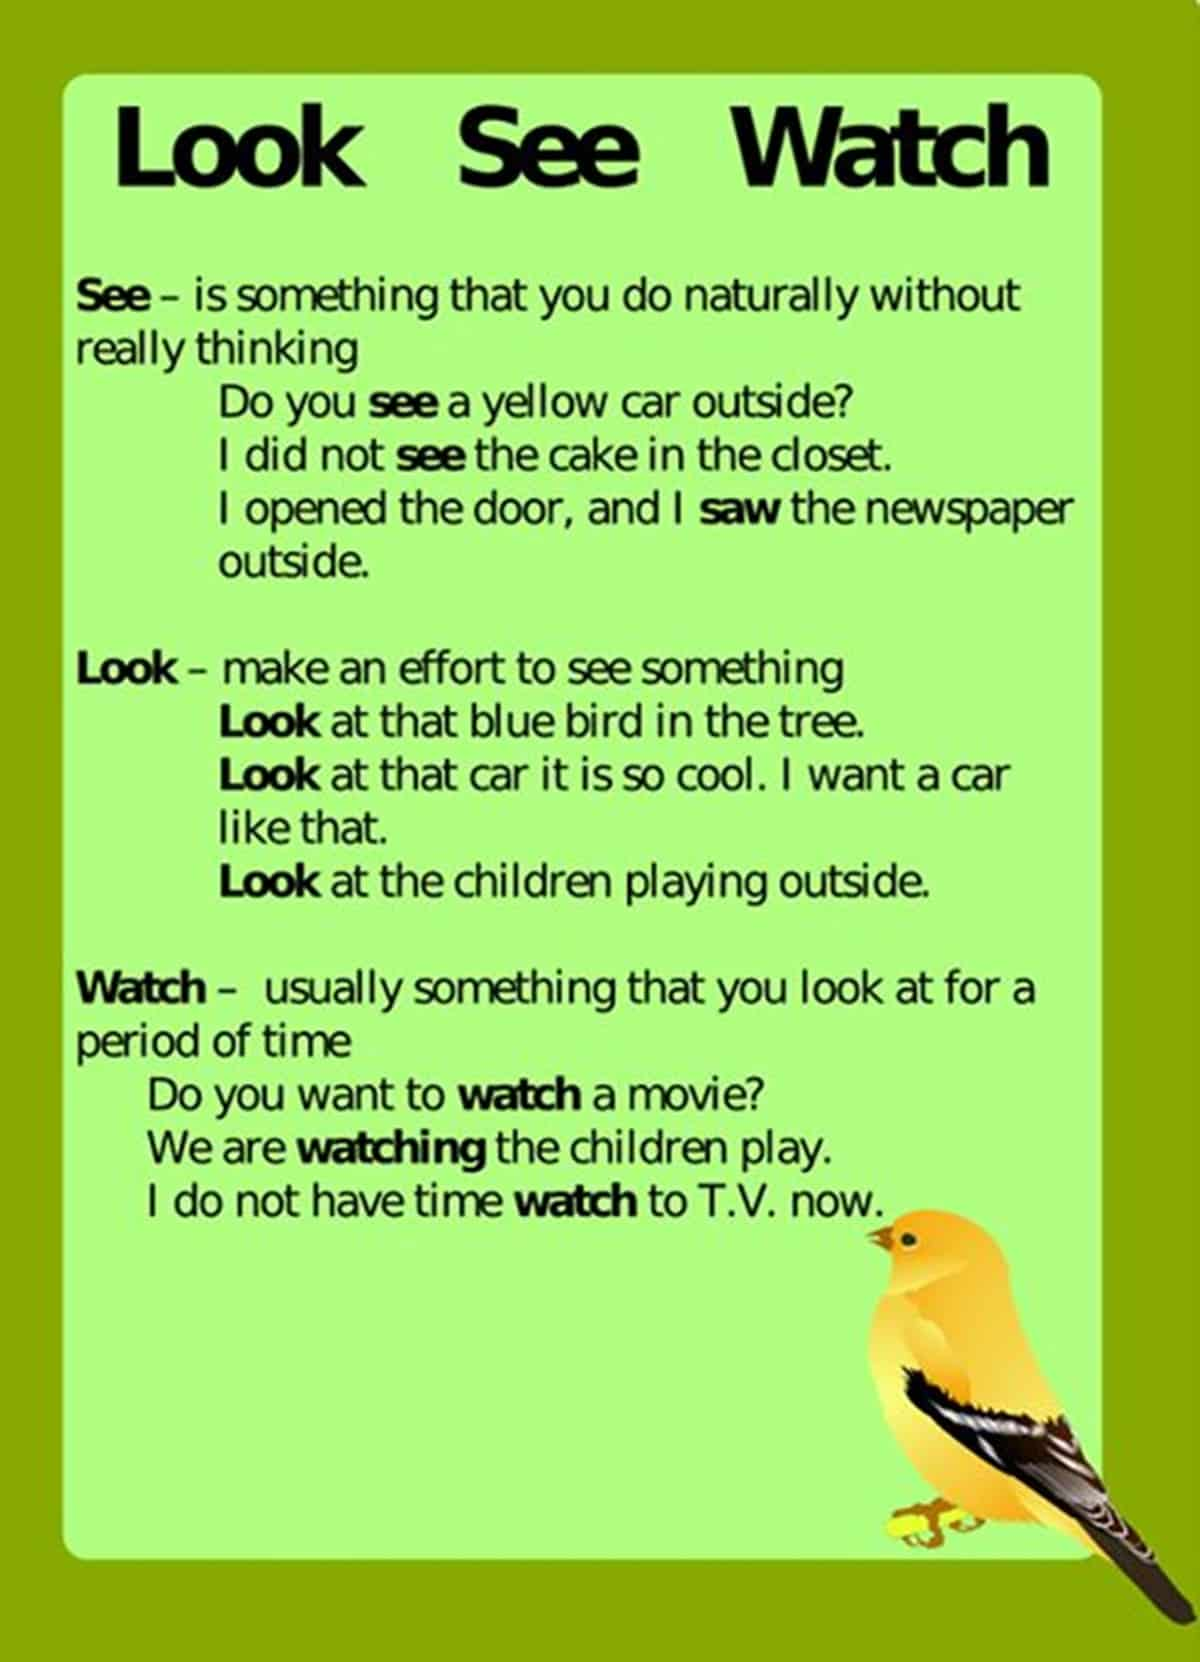 Difference between LOOK, SEE and WATCH